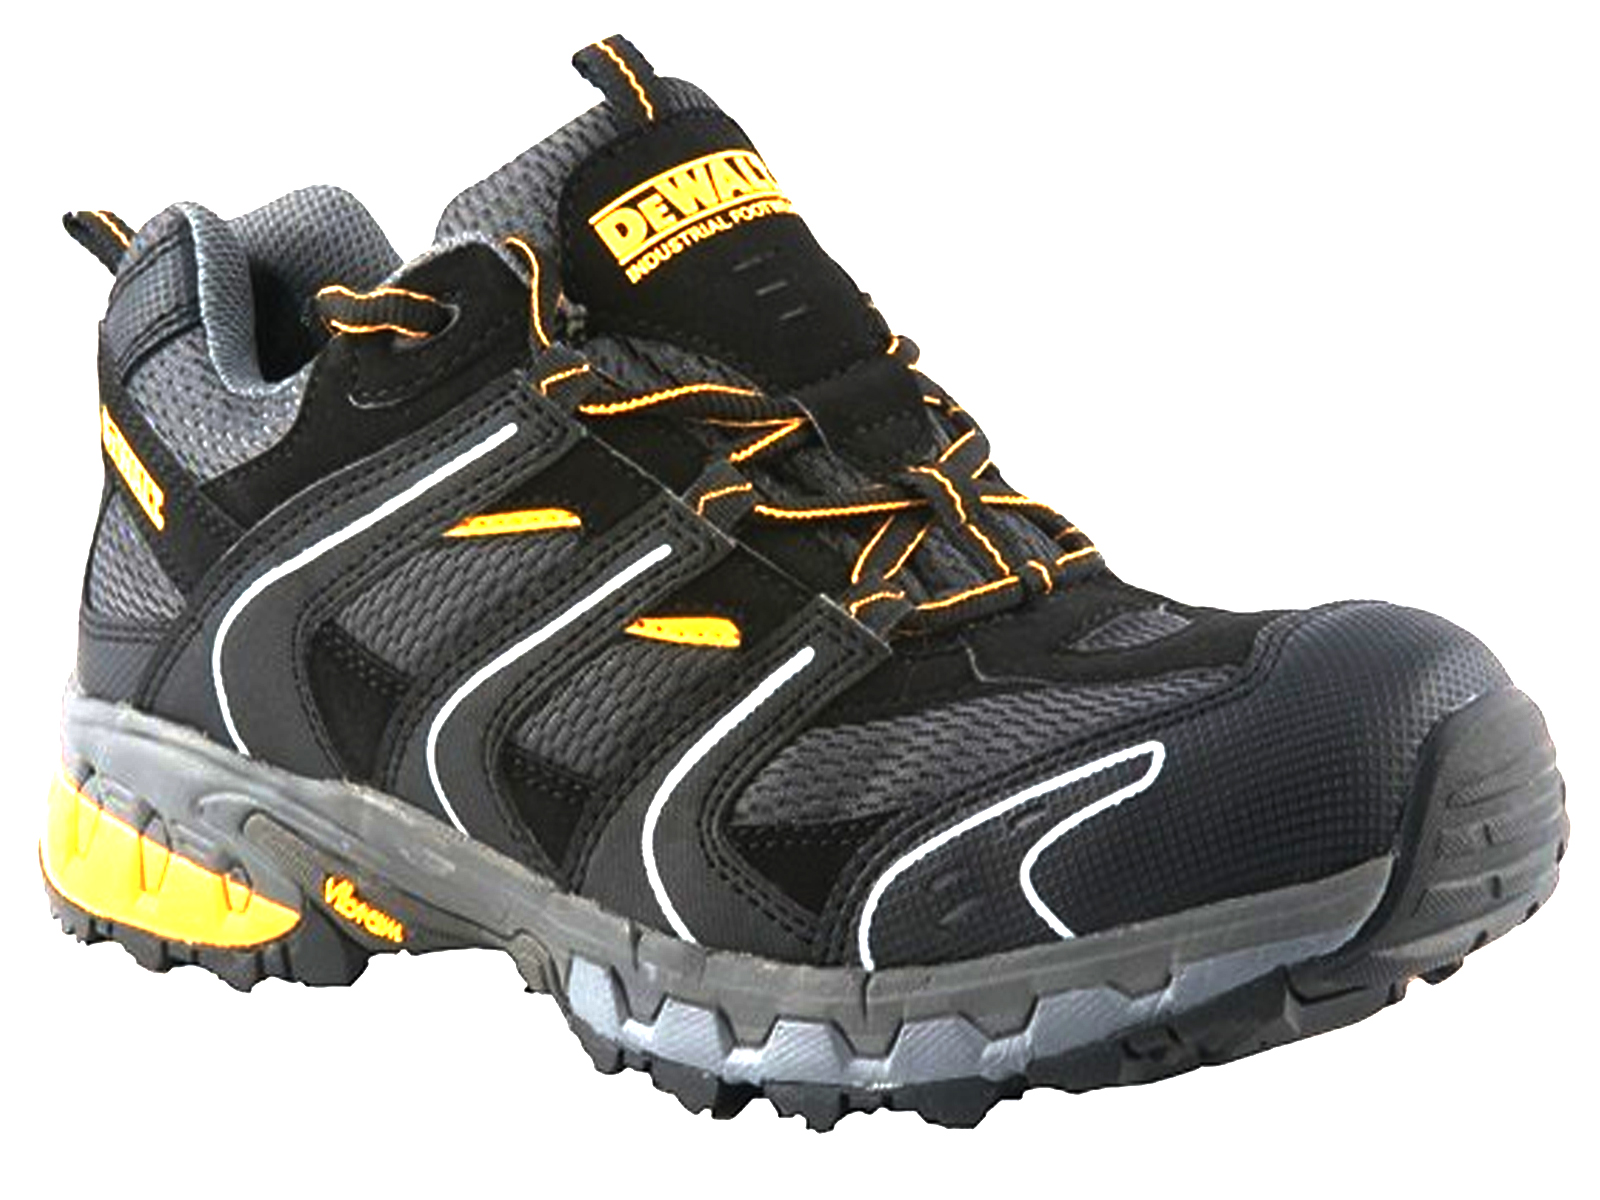 DEWALT CUTTER SAFETY TRAINER BLACK - SIZE 6